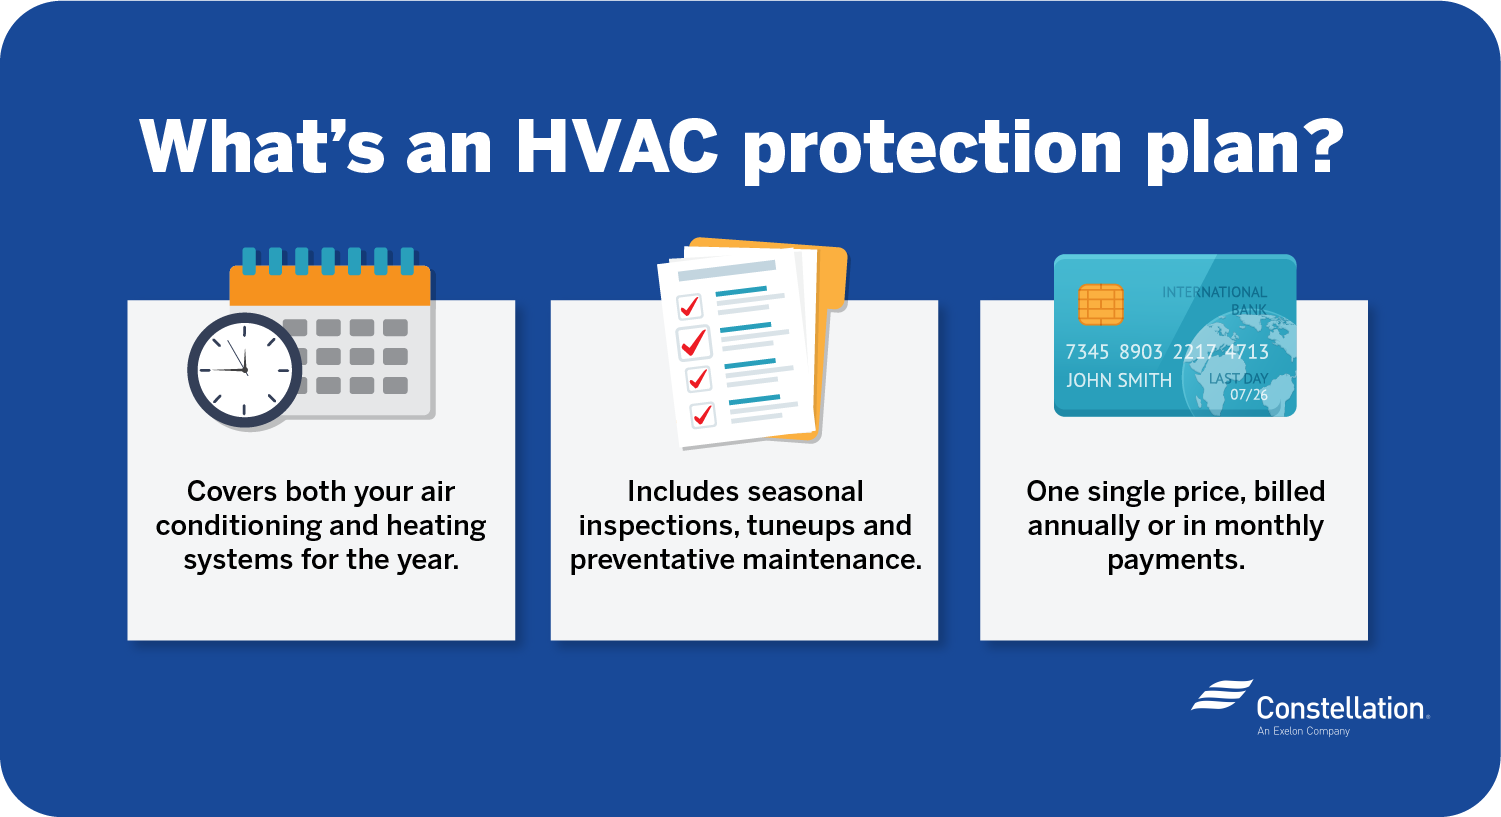 What's an hvac protection plan